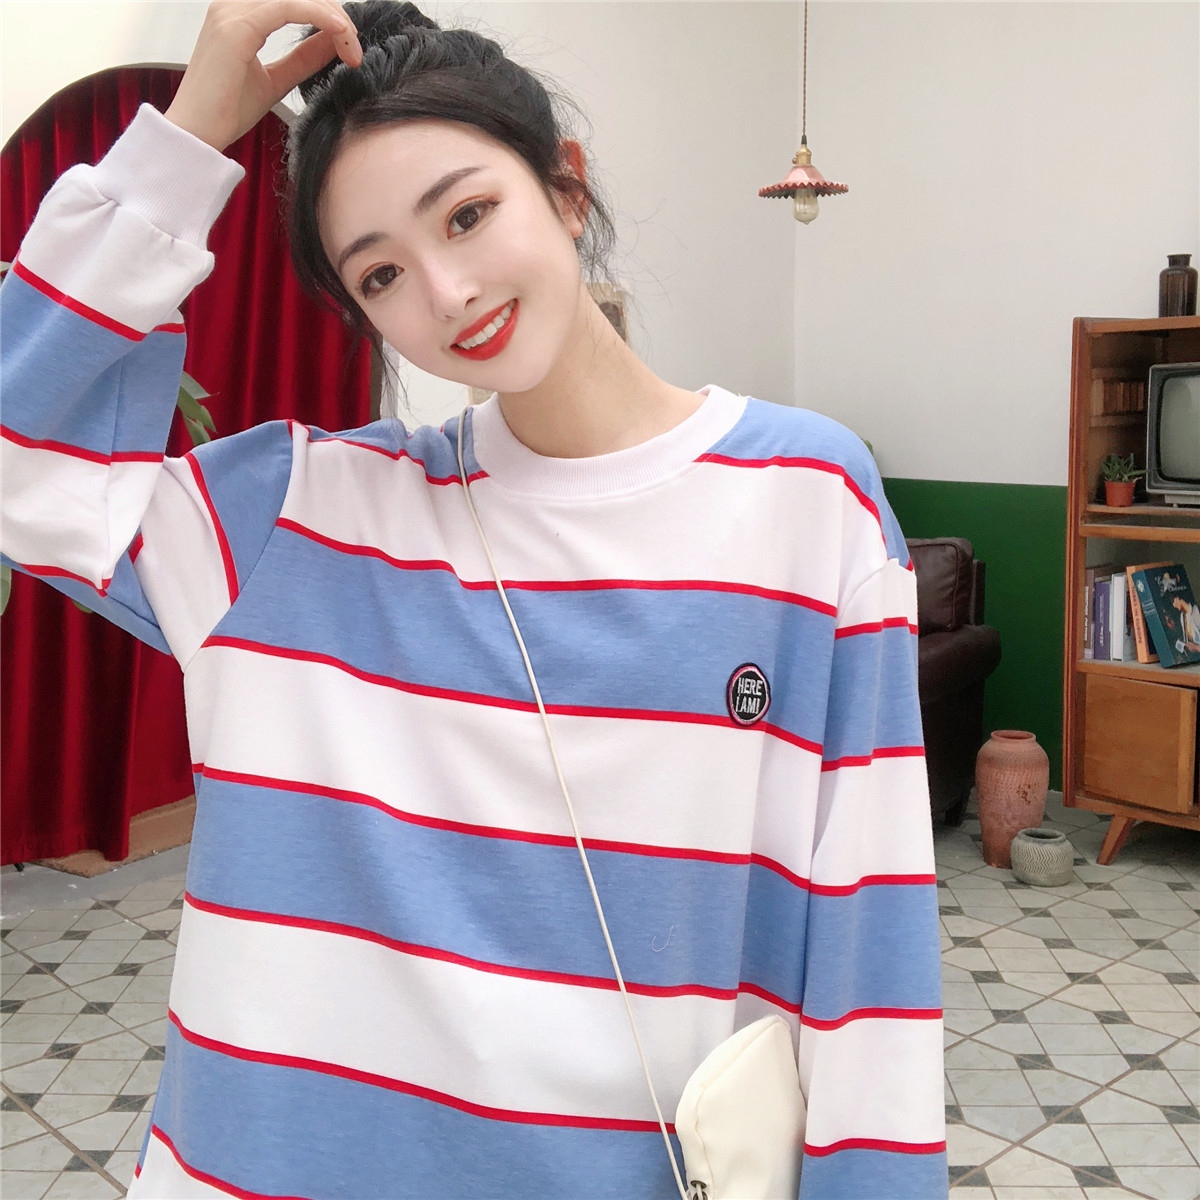 2019 Fall New Fashion Blue And White Striped Embroidered Hoodies Women Round Collar Pullover Sweatshirt Female Tracksuit M-XXL